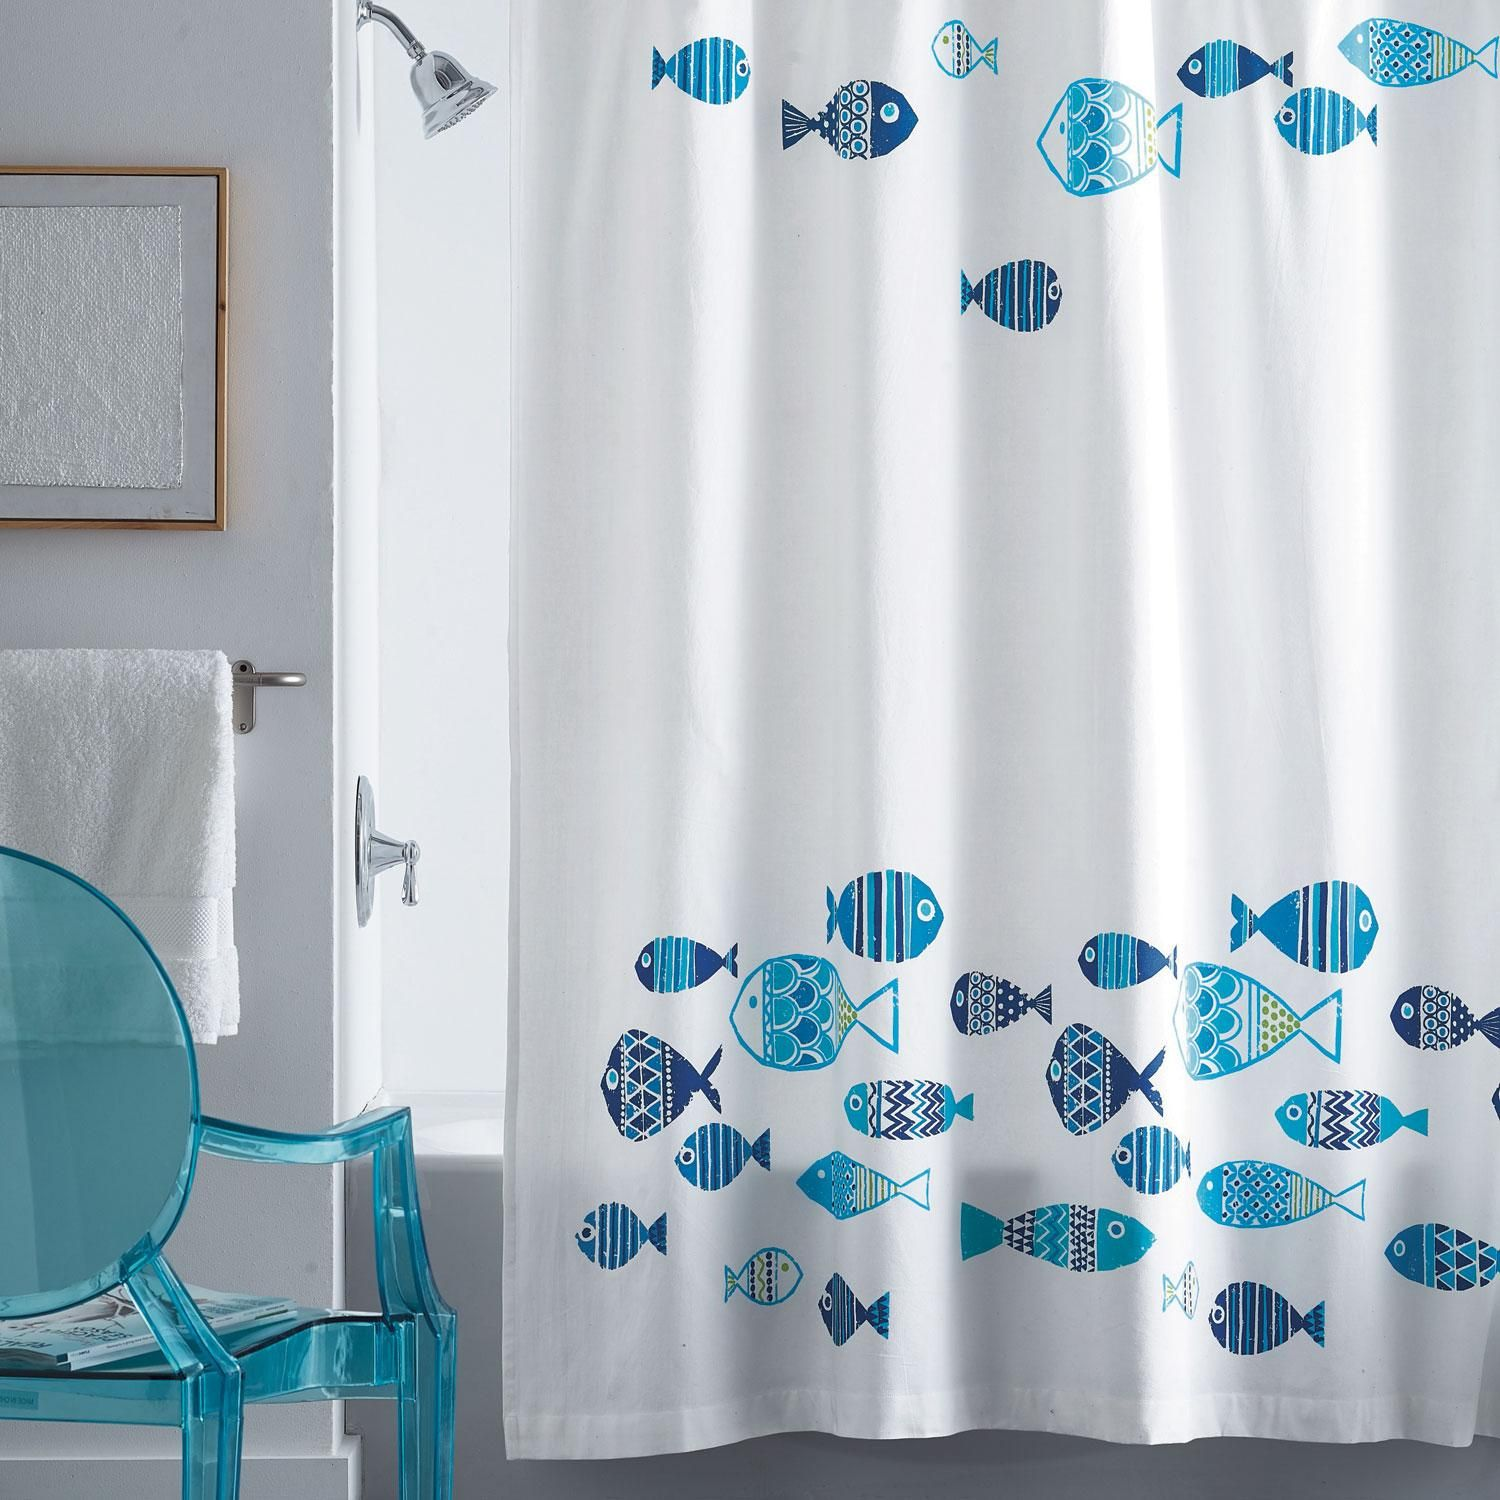 Fish Shower Curtain The Company Store Cool Shower Curtains